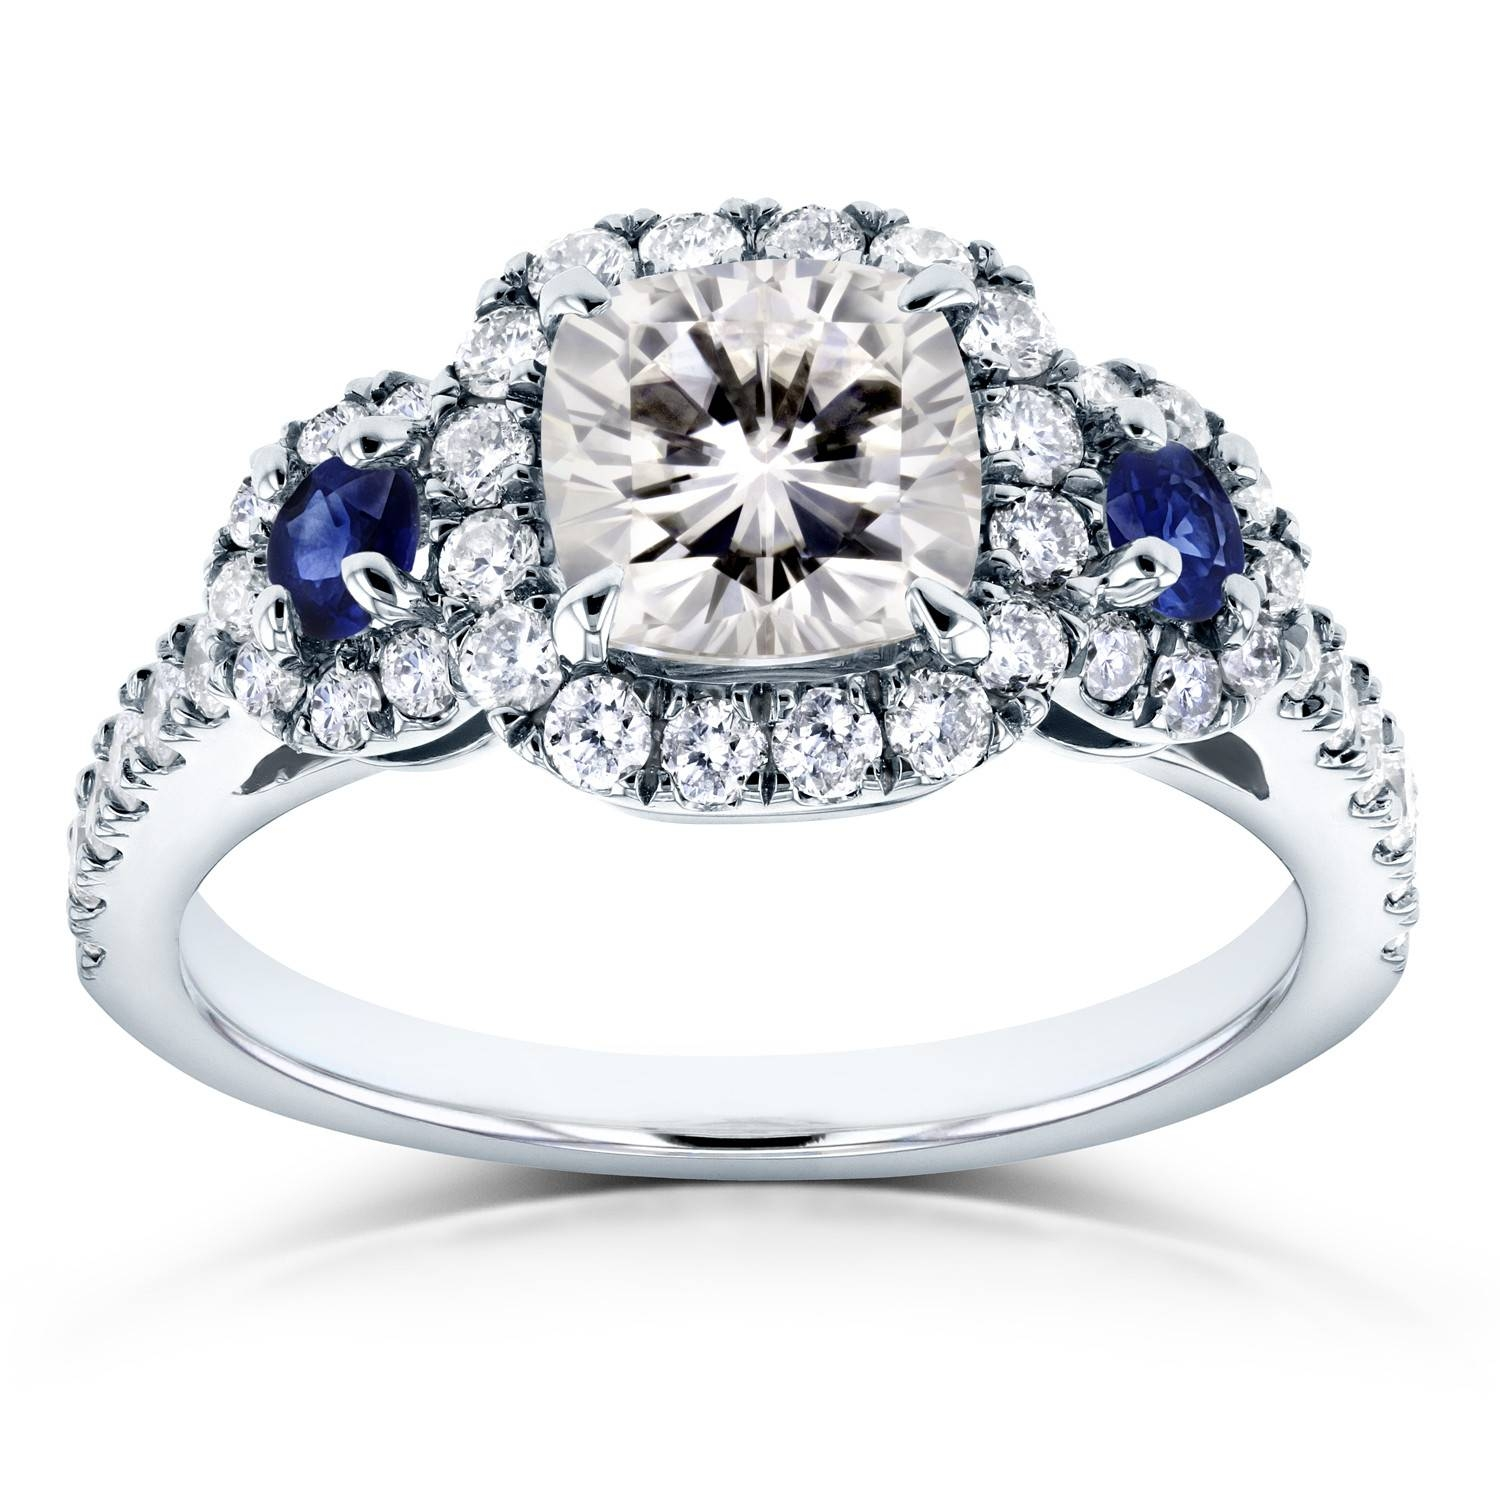 Moissanite (hi) Sapphire And Diamond Engagement Ring 1 7/8 Ctw 14k Regarding 7 Diamond Engagement Rings (View 10 of 15)